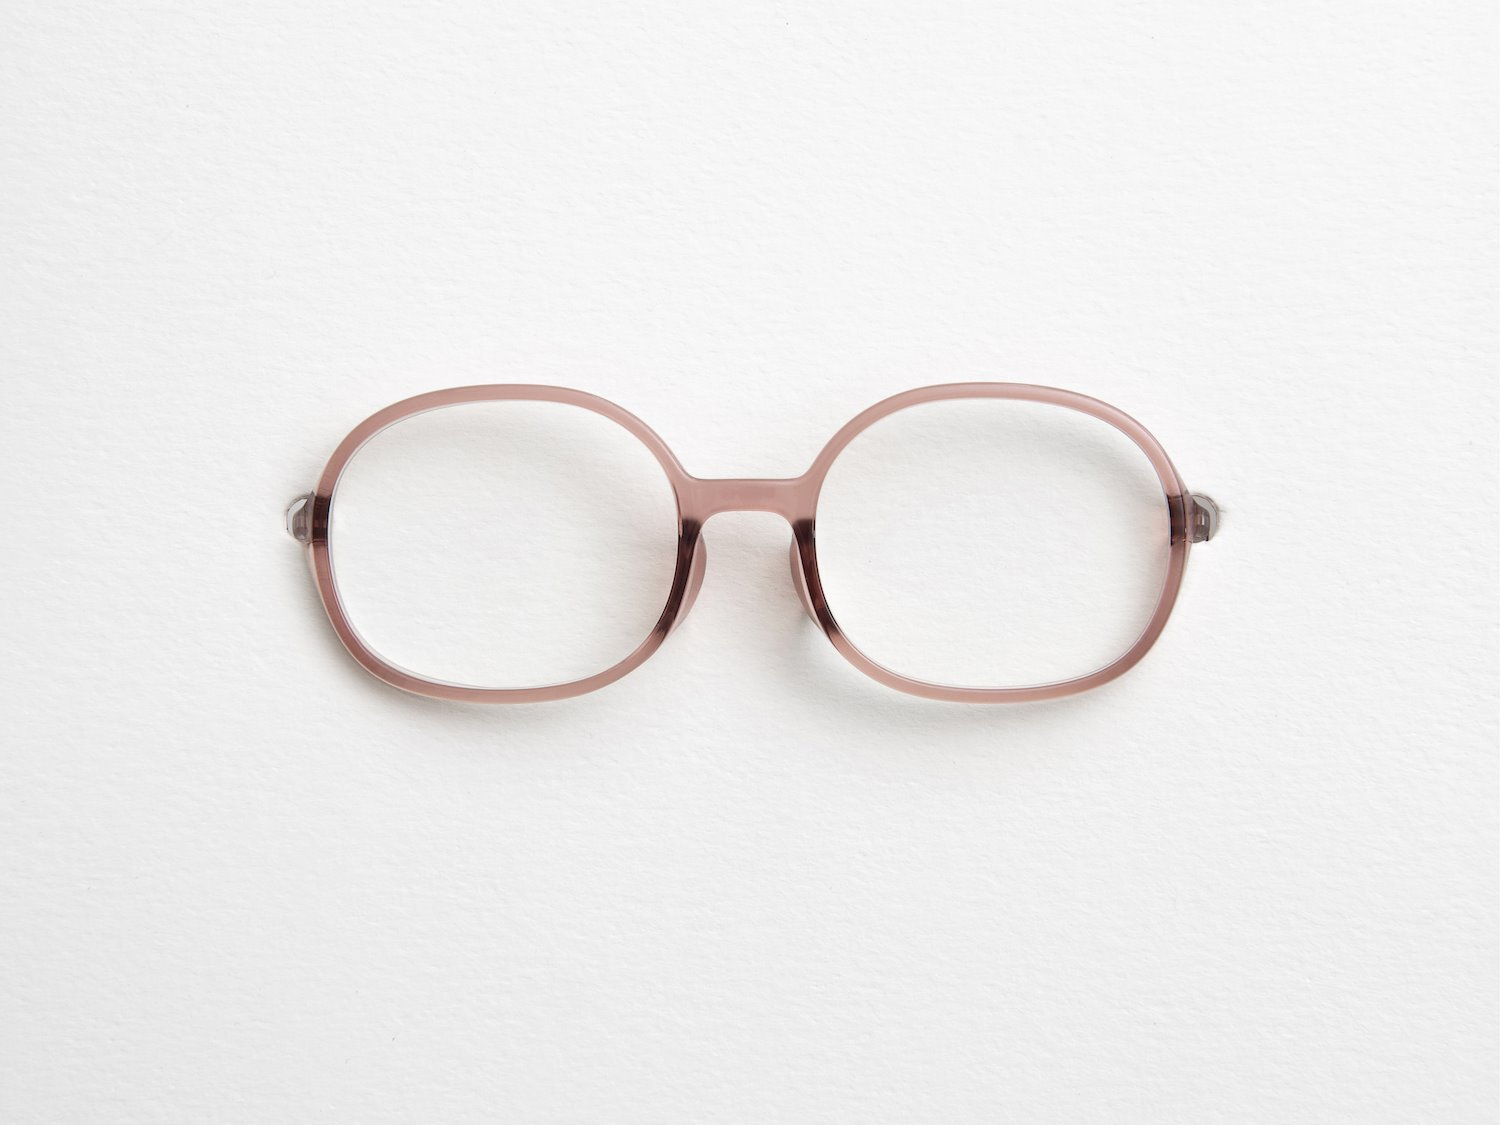 gafas Sugata de los hermanos Bouroullec para Jins Design Project 8